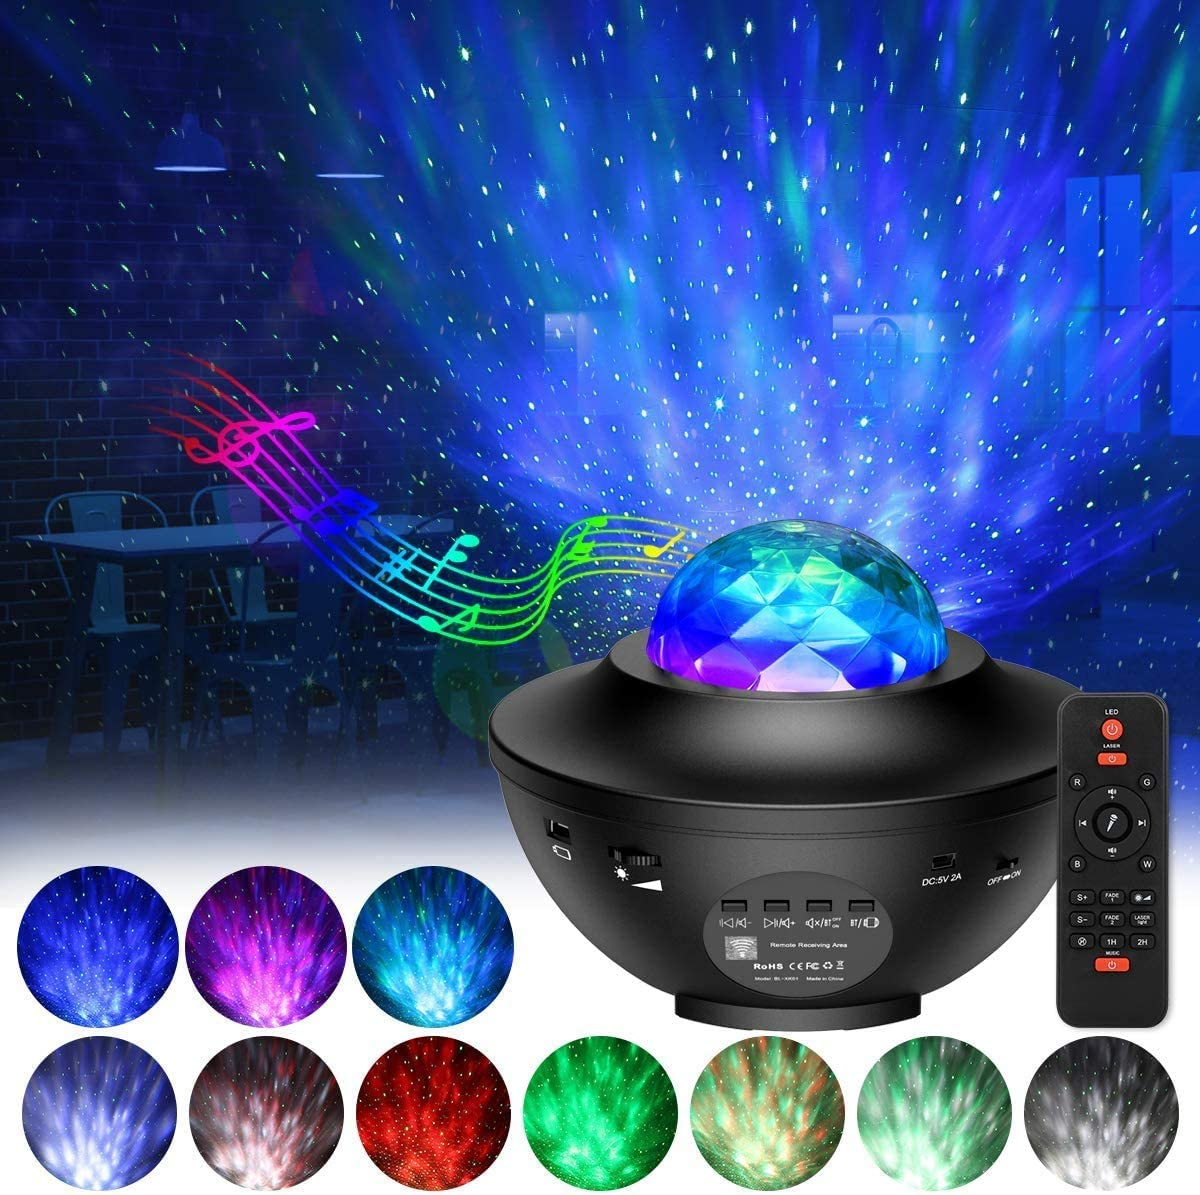 LED Star Projector,Austrobo Kids Night Light Projector Adjustable Lightness Starry Sky Projector 3 in 1 Ocean Wave Projector with Music Speak and Remote Control for Kids Adult Bedroom Living Decor